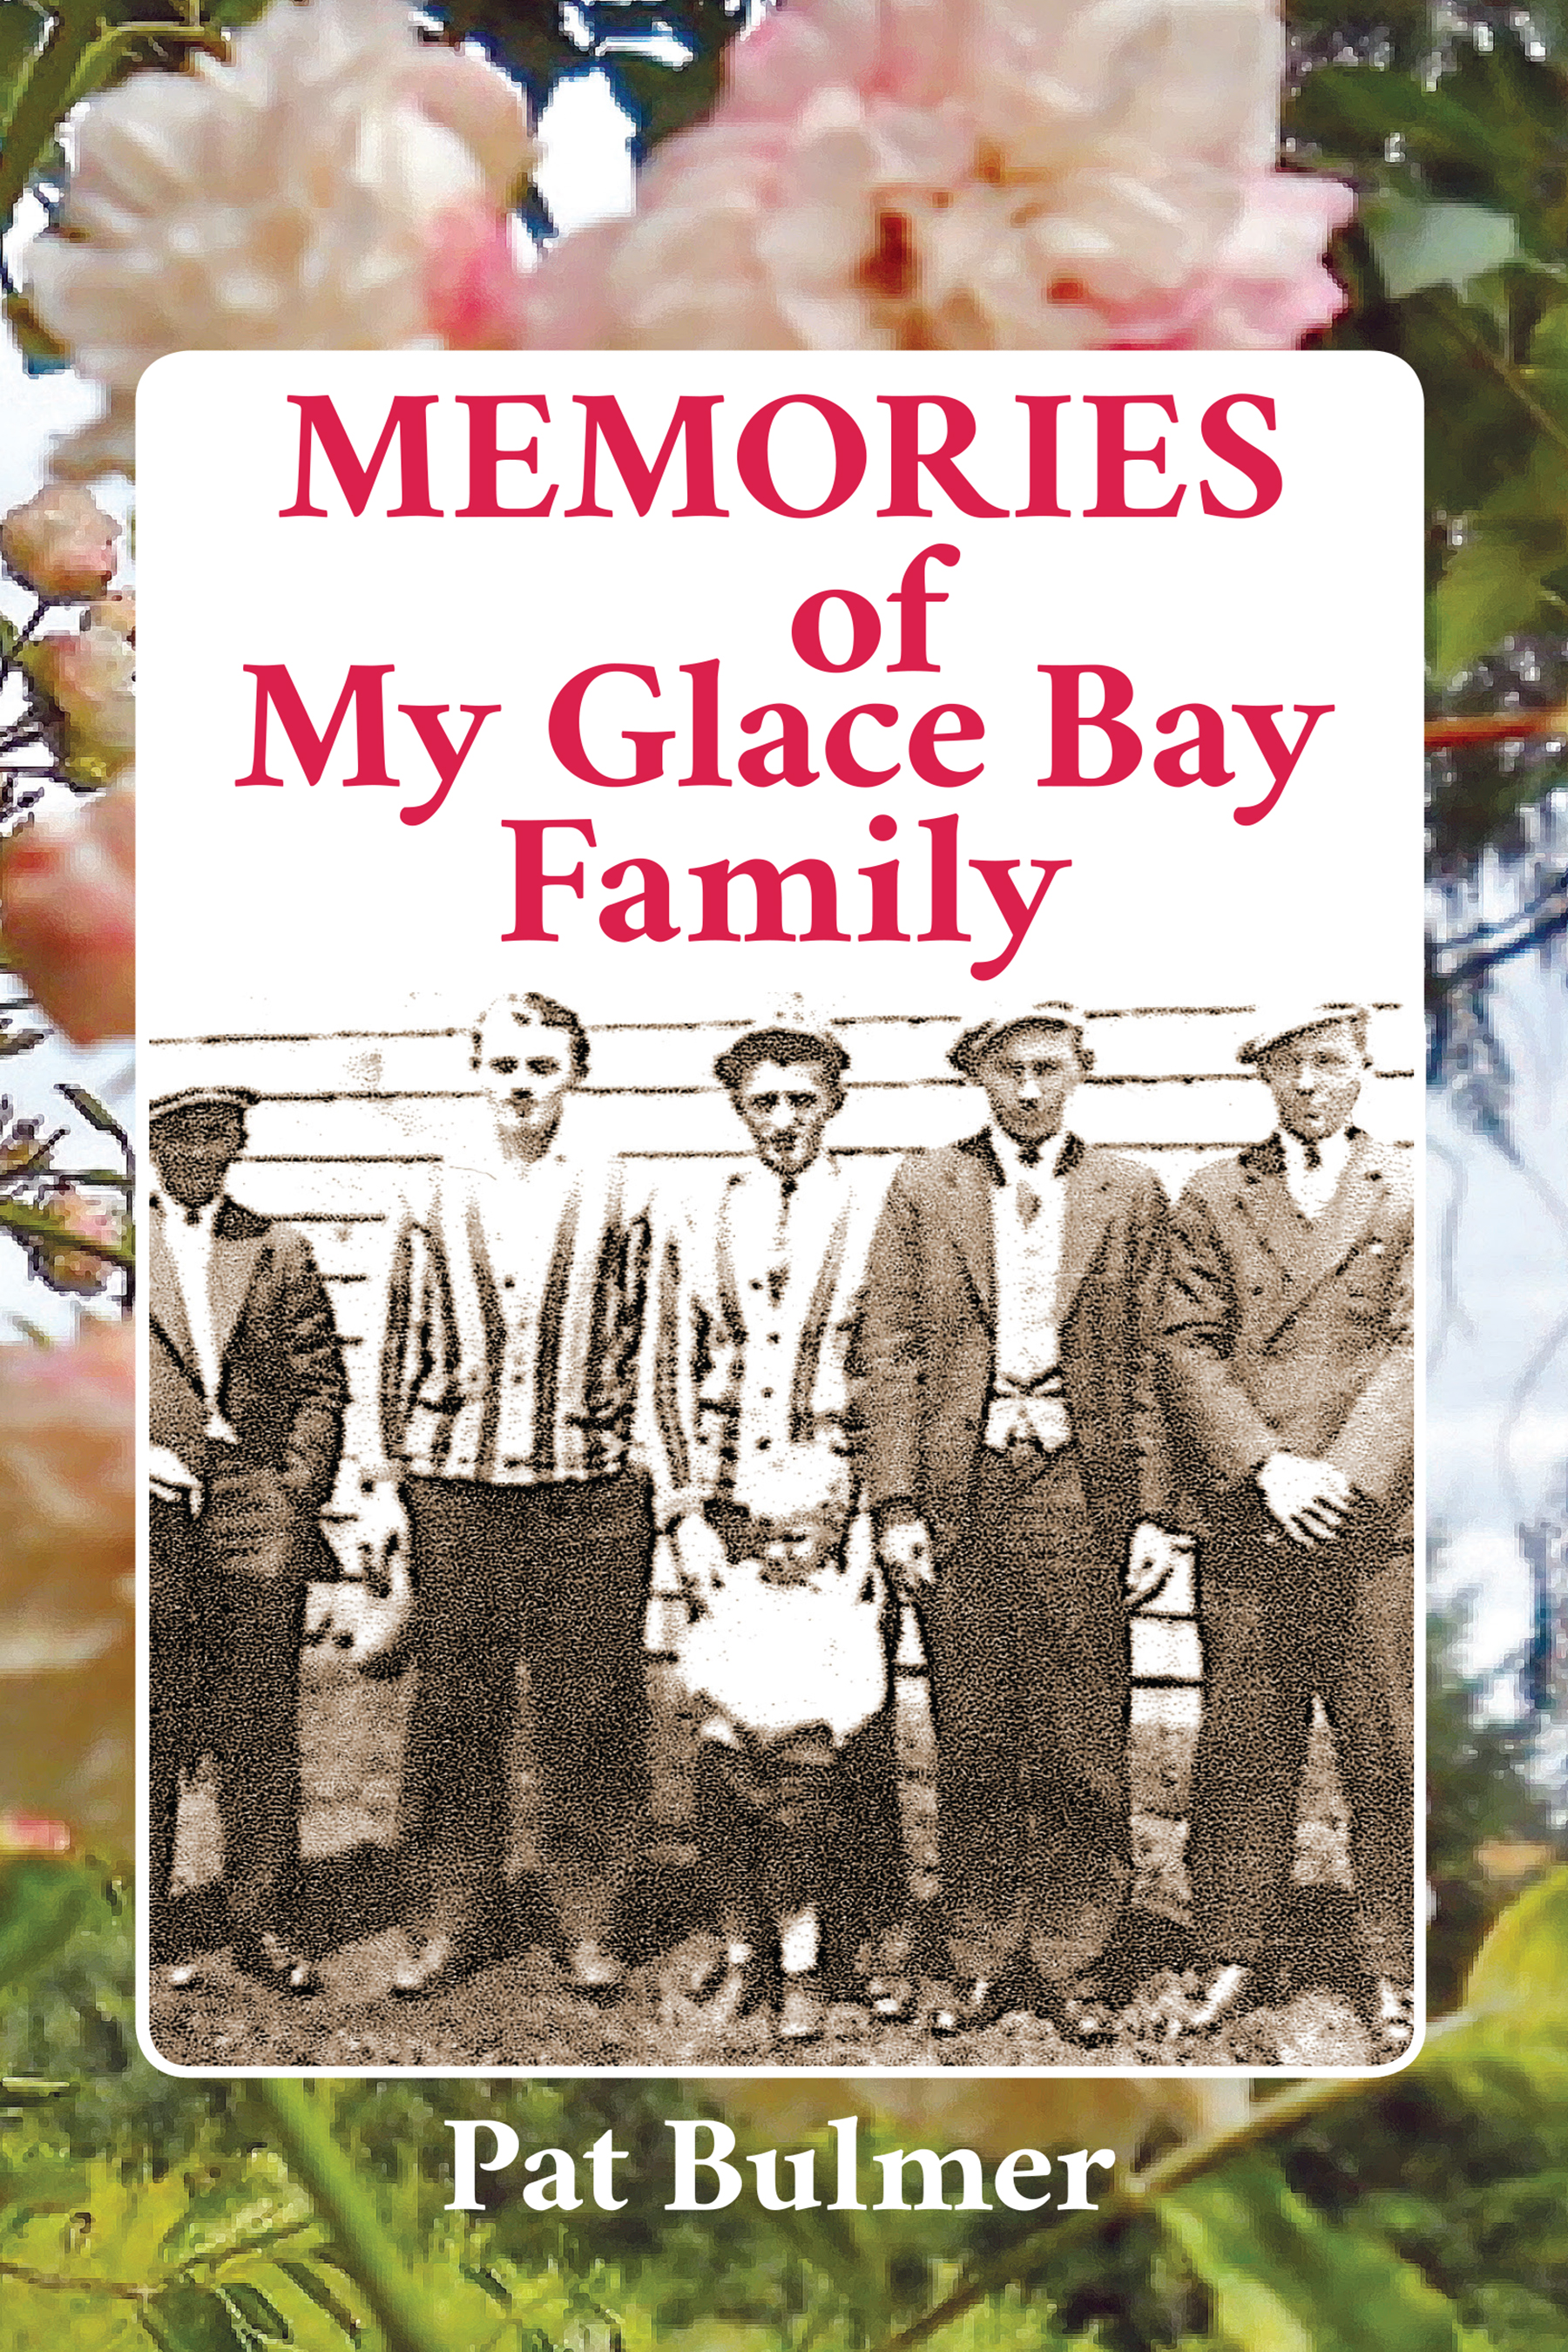 Memories of my Glace Bay Family by Pat Bulmer